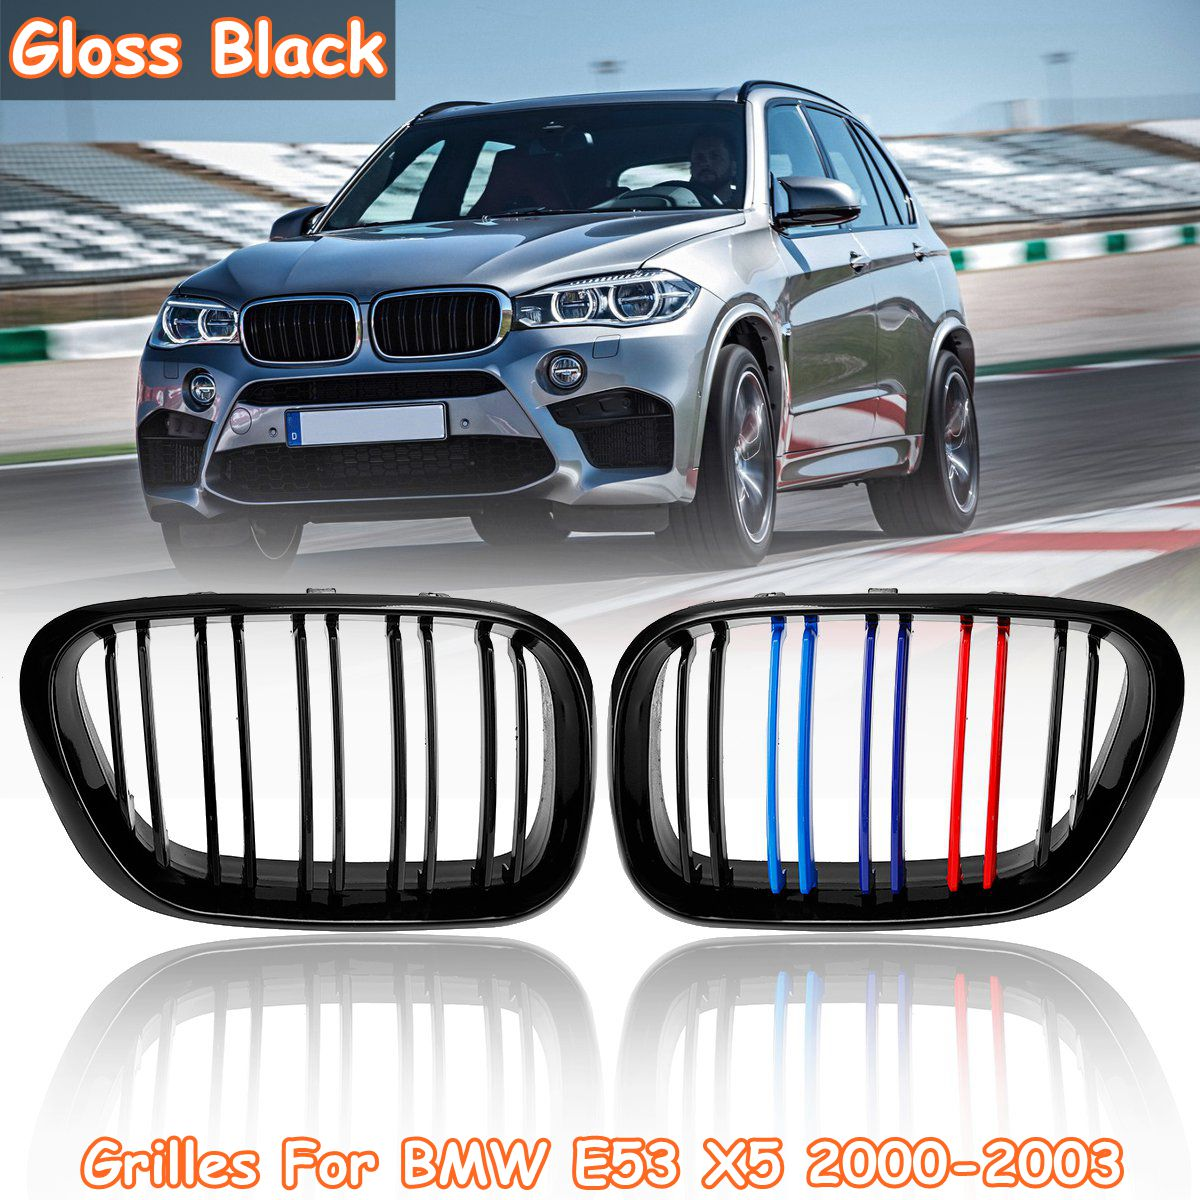 Pair Matte Gloss Black Chrome Front Kidney Grille Grills Double Slat For BMW E53 X5 2000 2001 2002 2003 Car StylingPair Matte Gloss Black Chrome Front Kidney Grille Grills Double Slat For BMW E53 X5 2000 2001 2002 2003 Car Styling